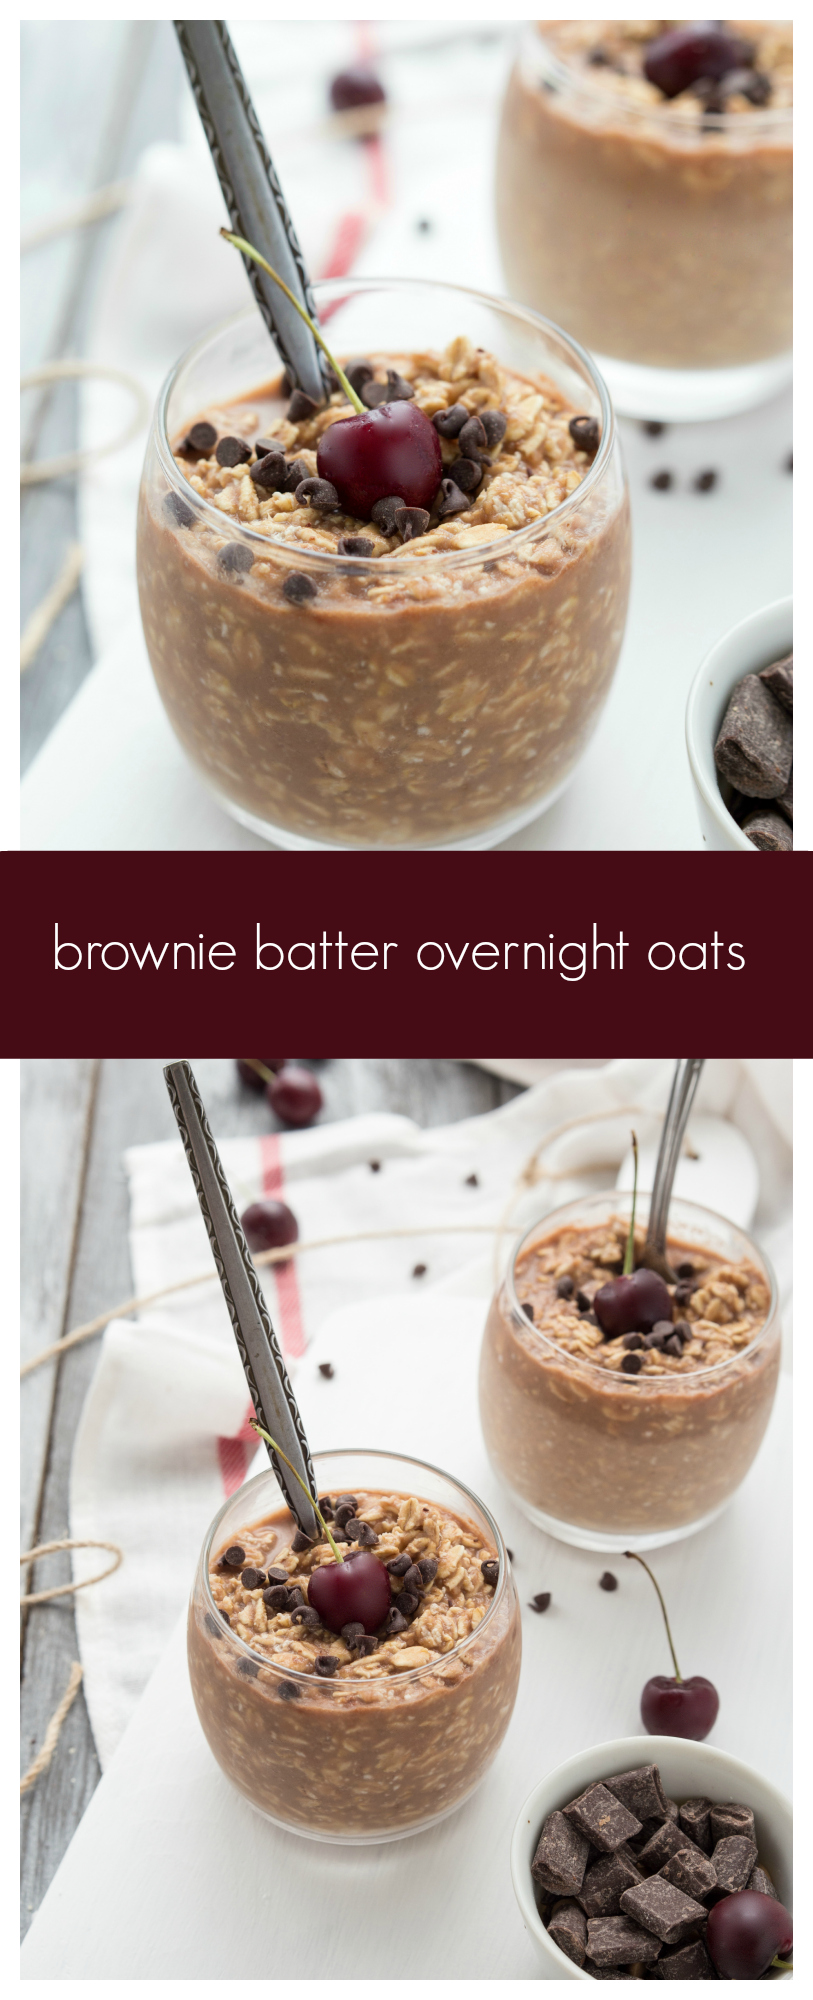 Double-Chocolate Brownie Batter Overnight Oats I via chelseasmessyapron.com I #brownie #overnightoats #cleaneating #chocolate